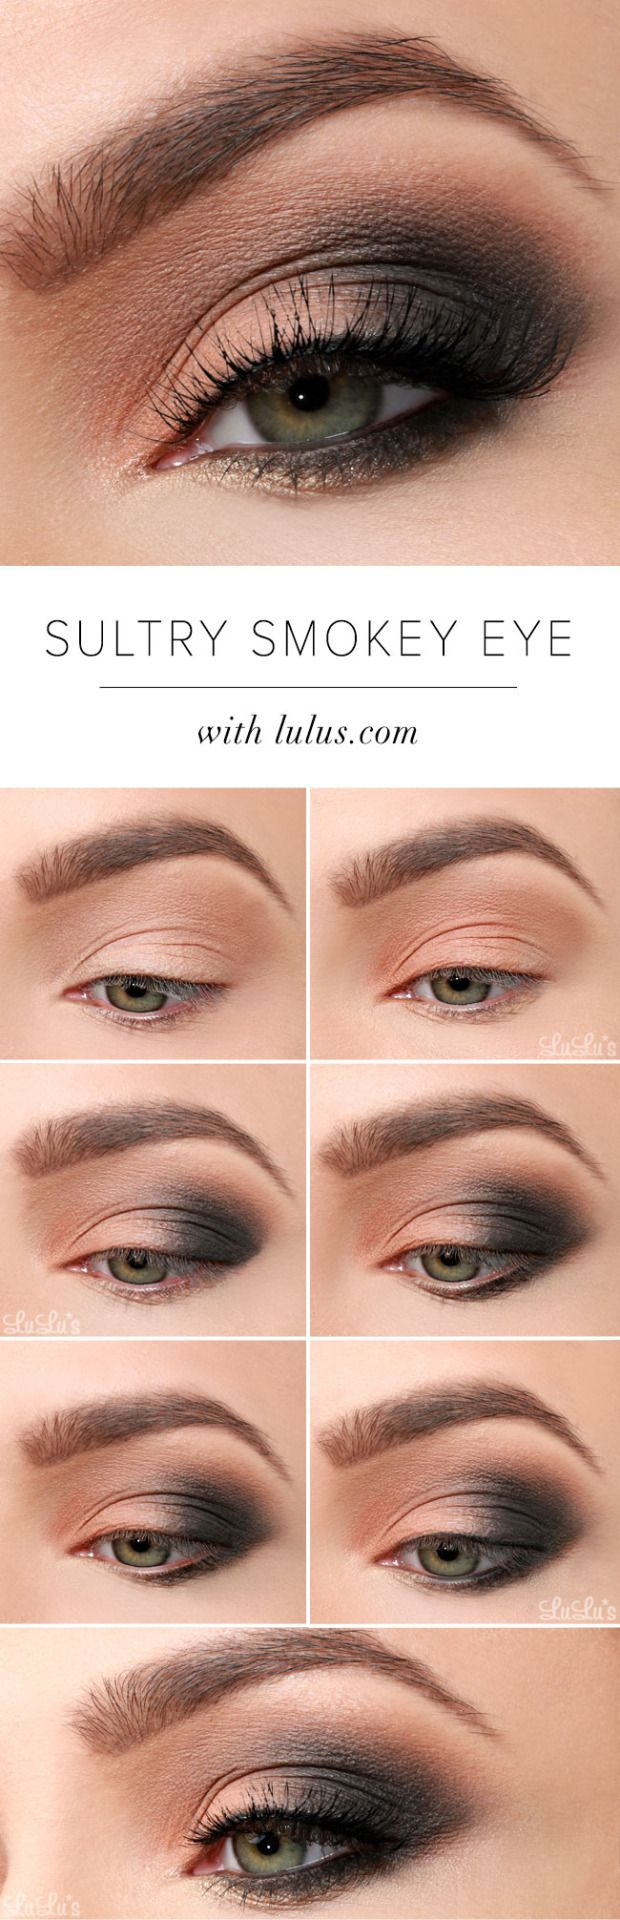 lulu*s how-to: sultry smokey eye makeup tutorial | make up